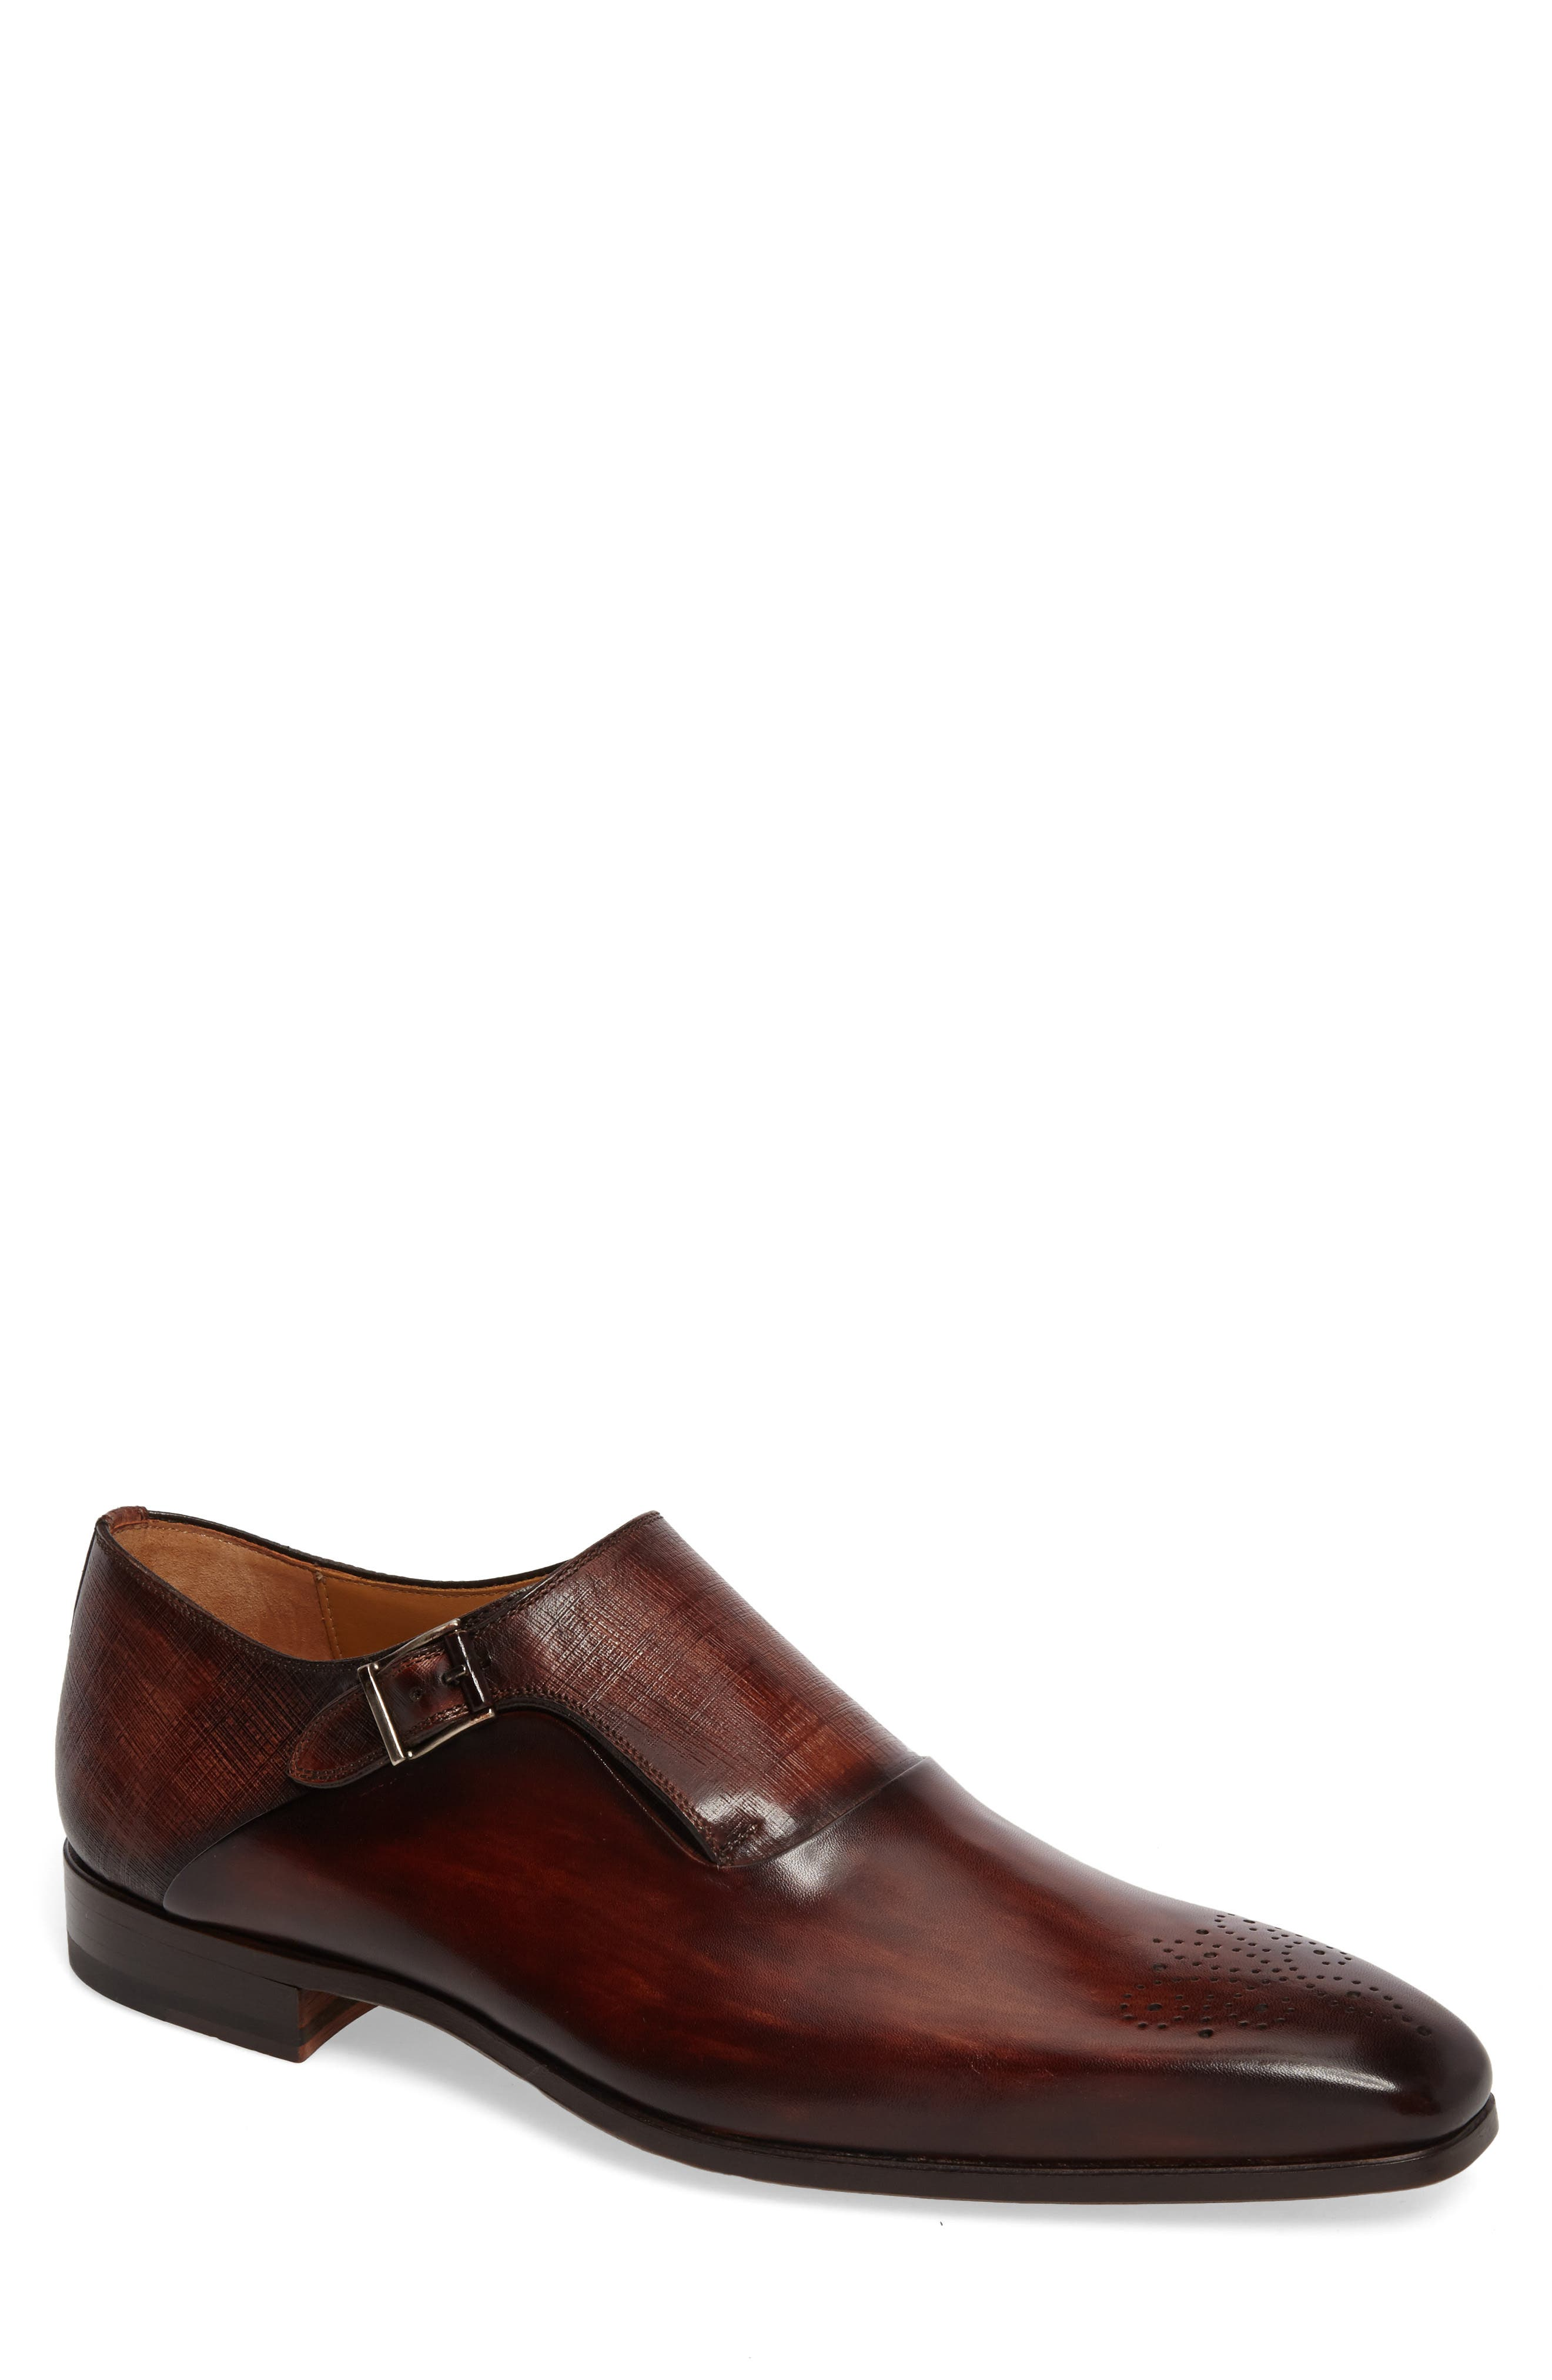 Main Image - Magnanni Saburo Monk Strap Shoe (Men)